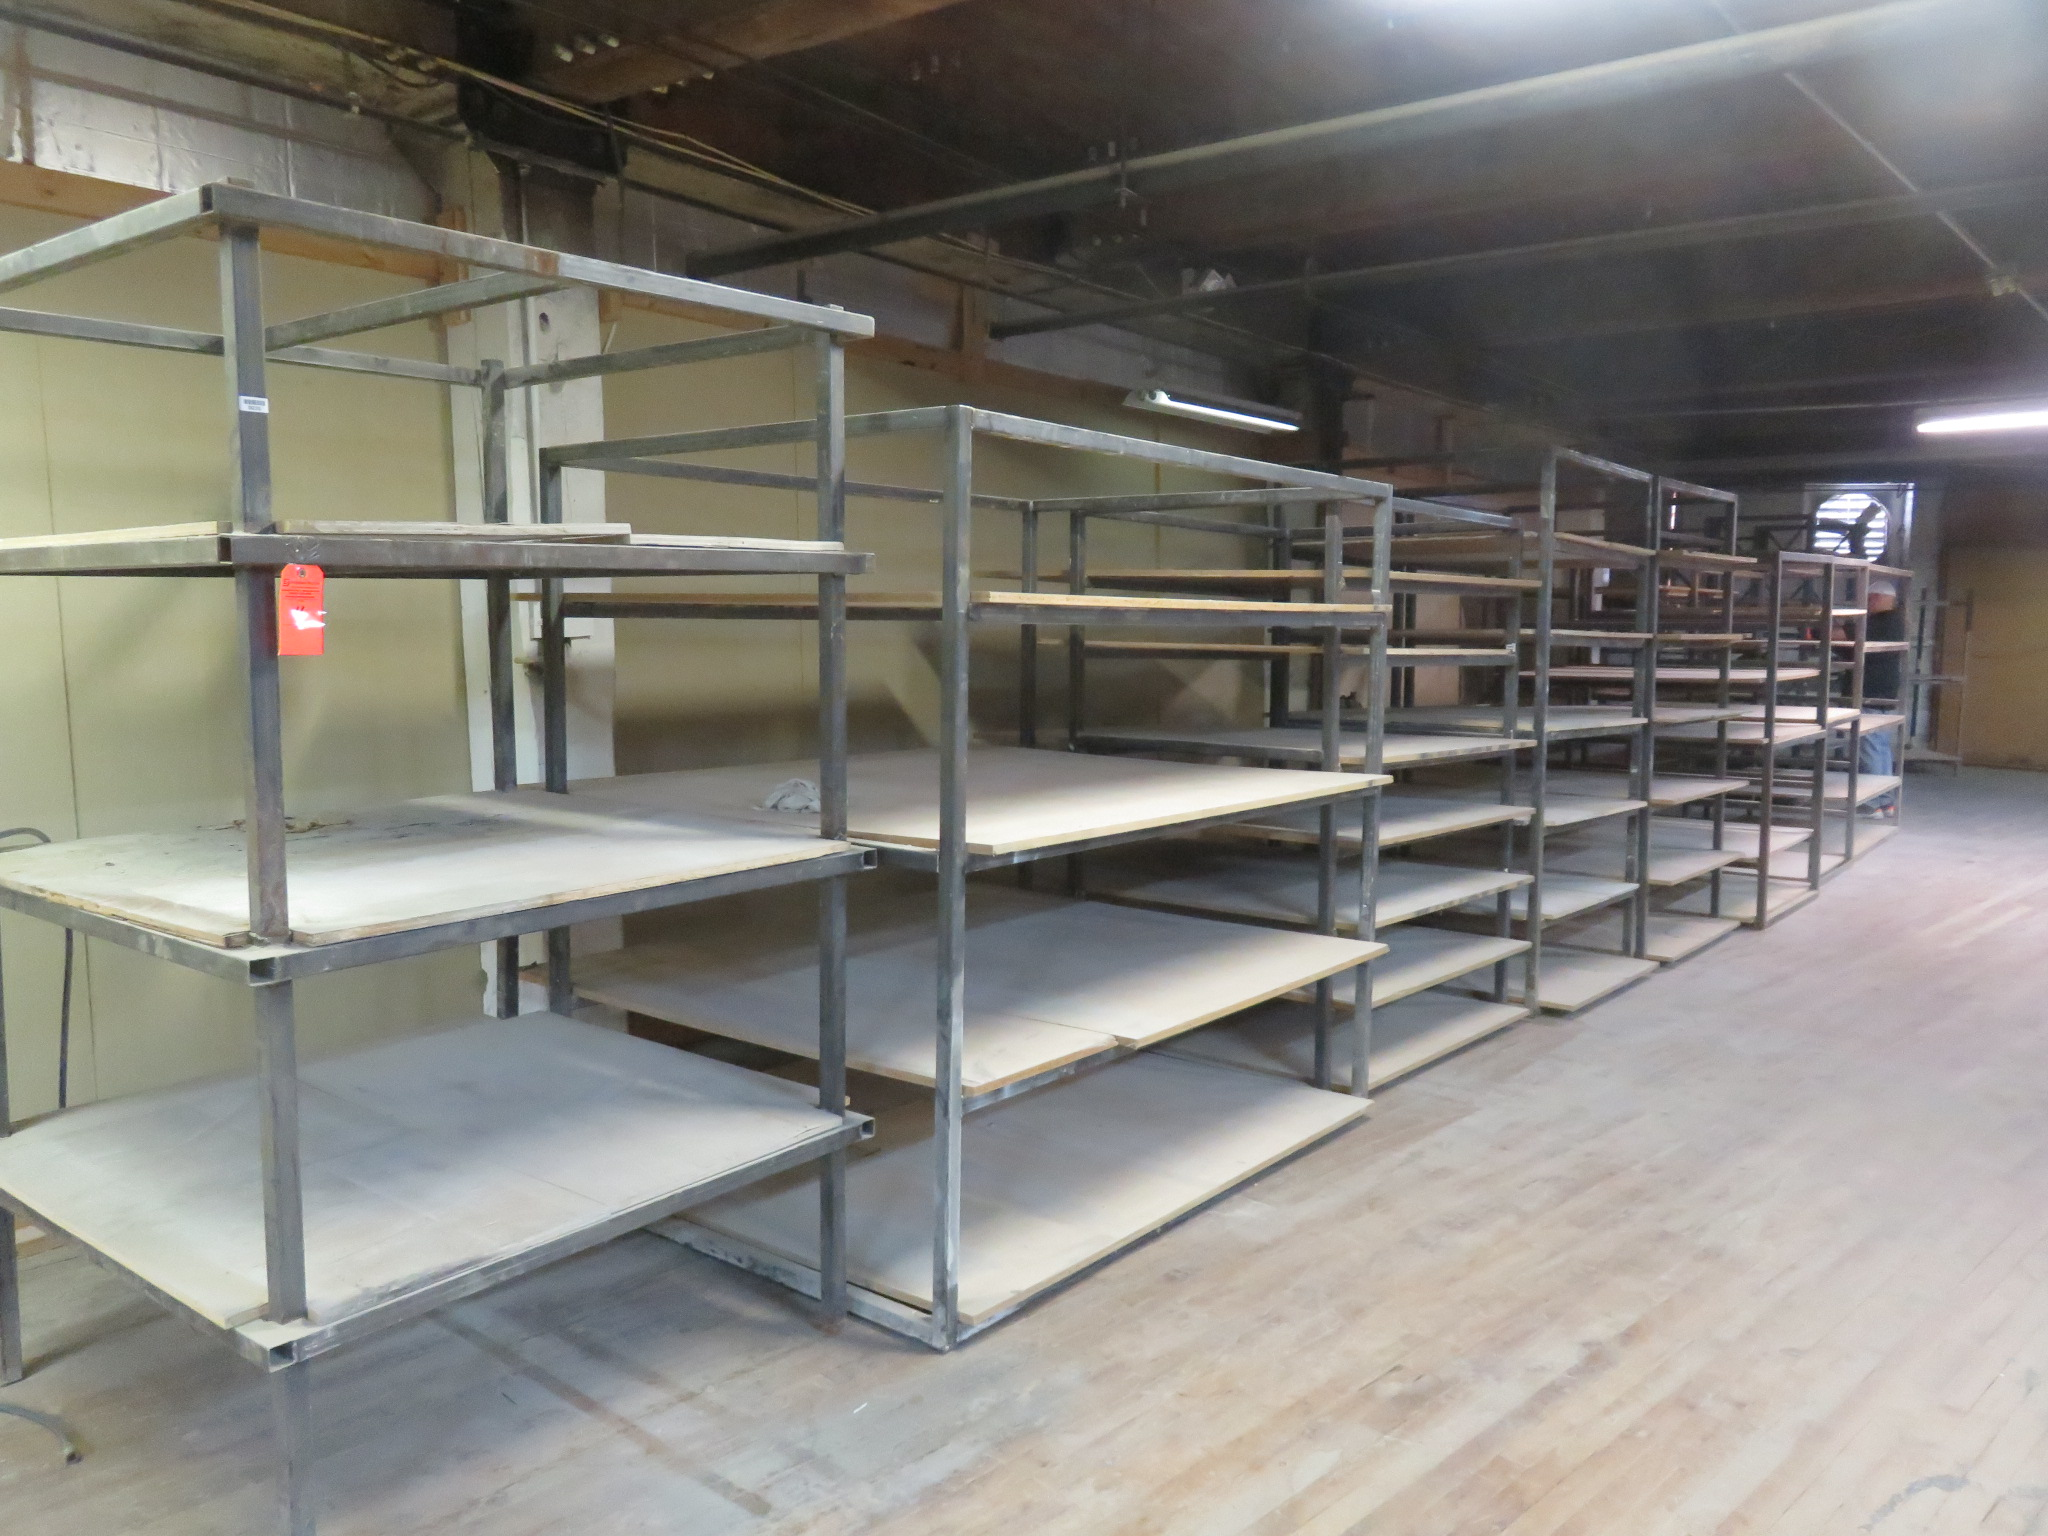 Custom Shelving/ Racks Lot of 9 Sizes Vary